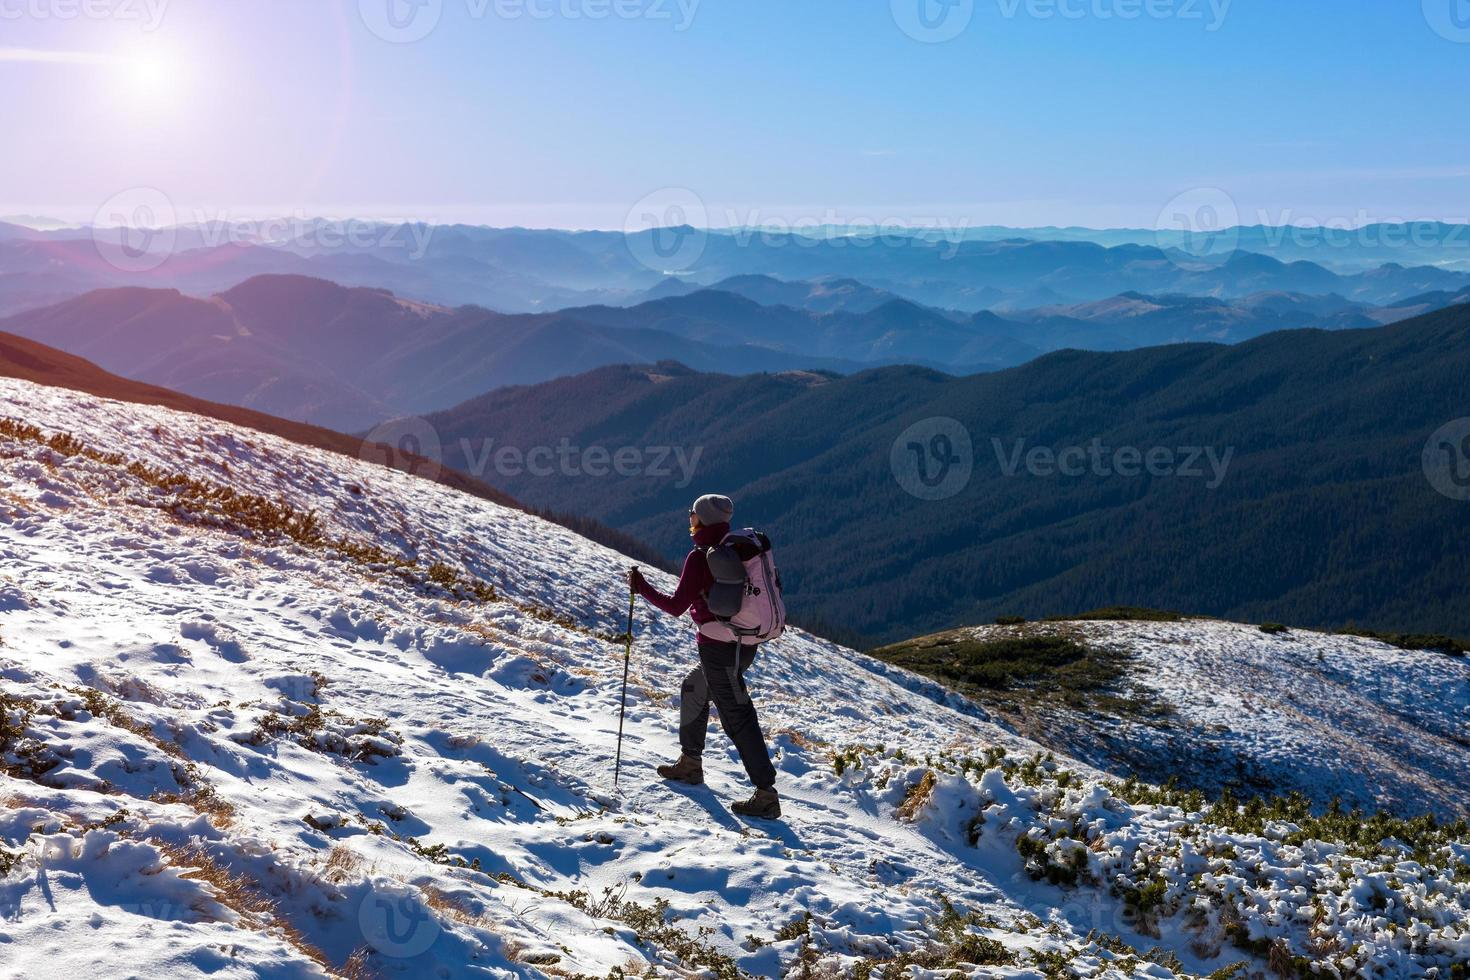 One Hiker Walking on Snow Ice Terrain Wide Mountain View photo